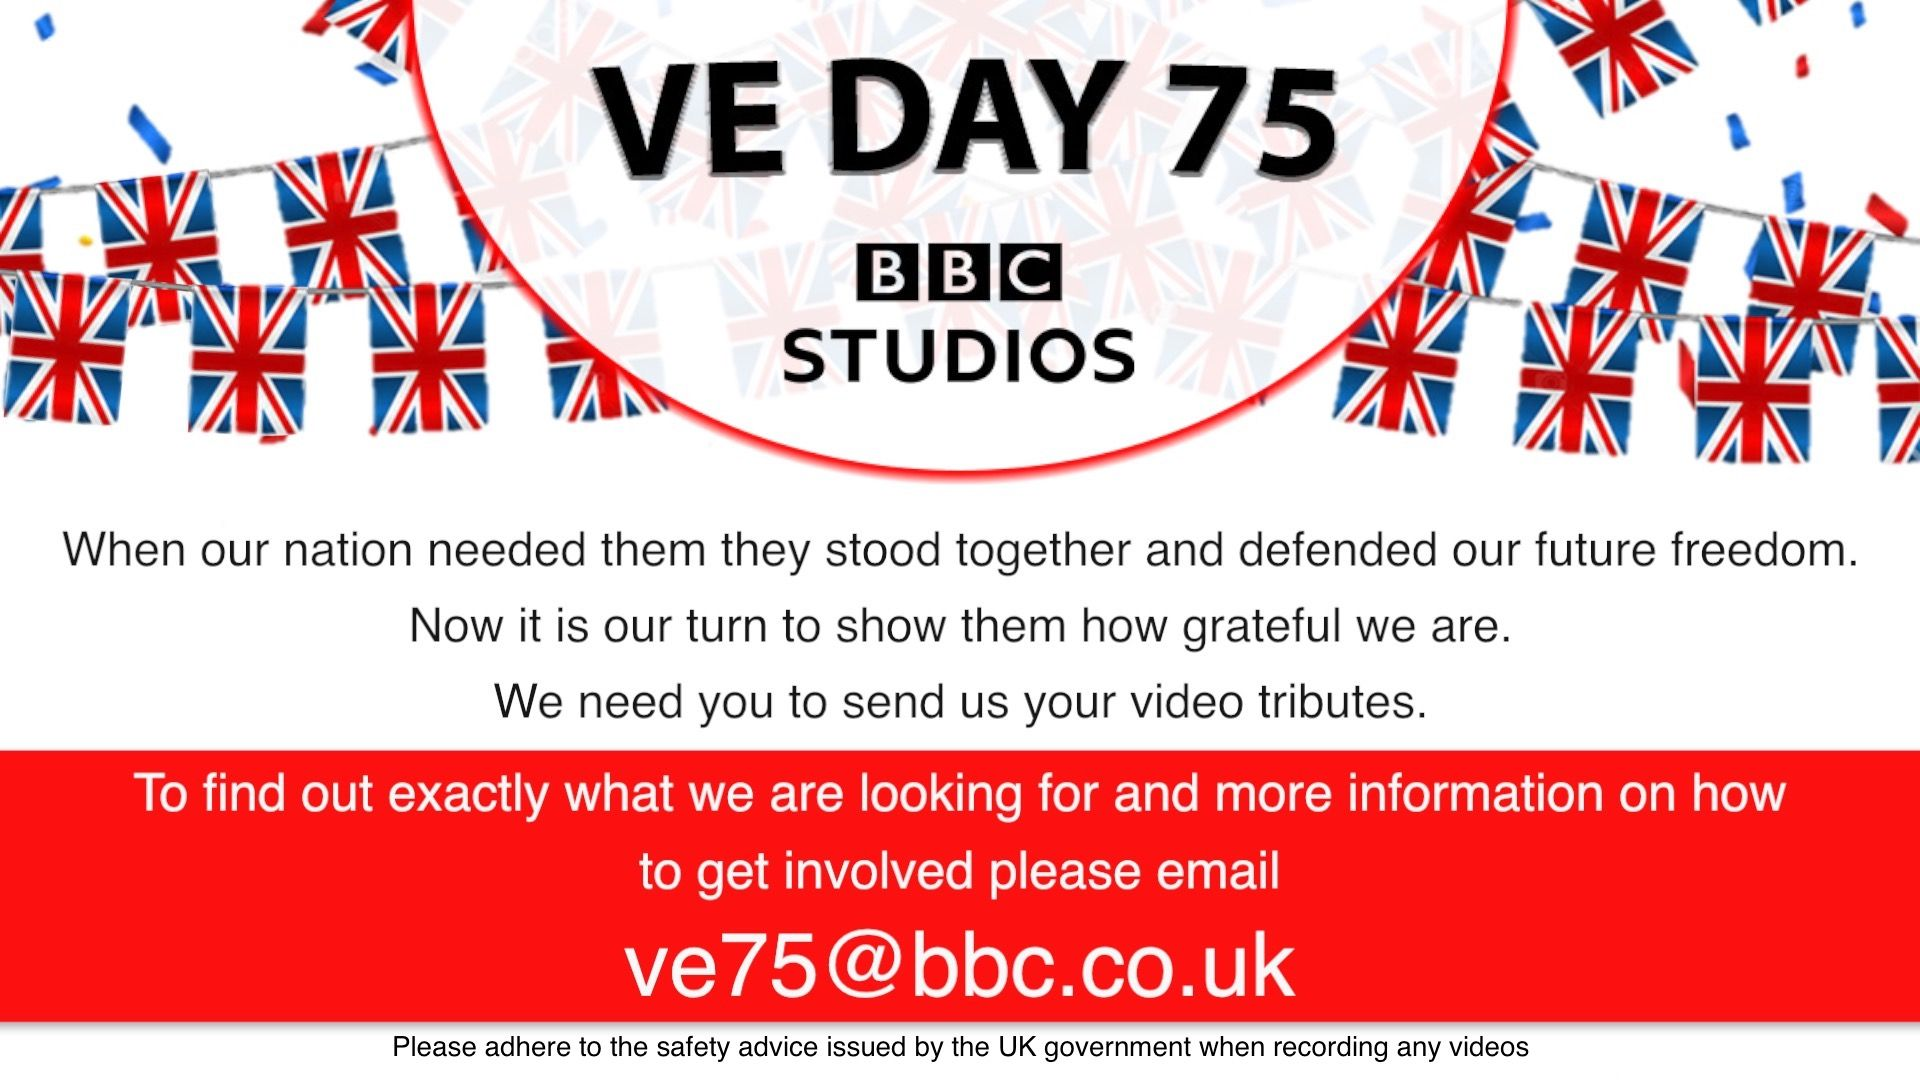 VE Day Help the BBC with your stories